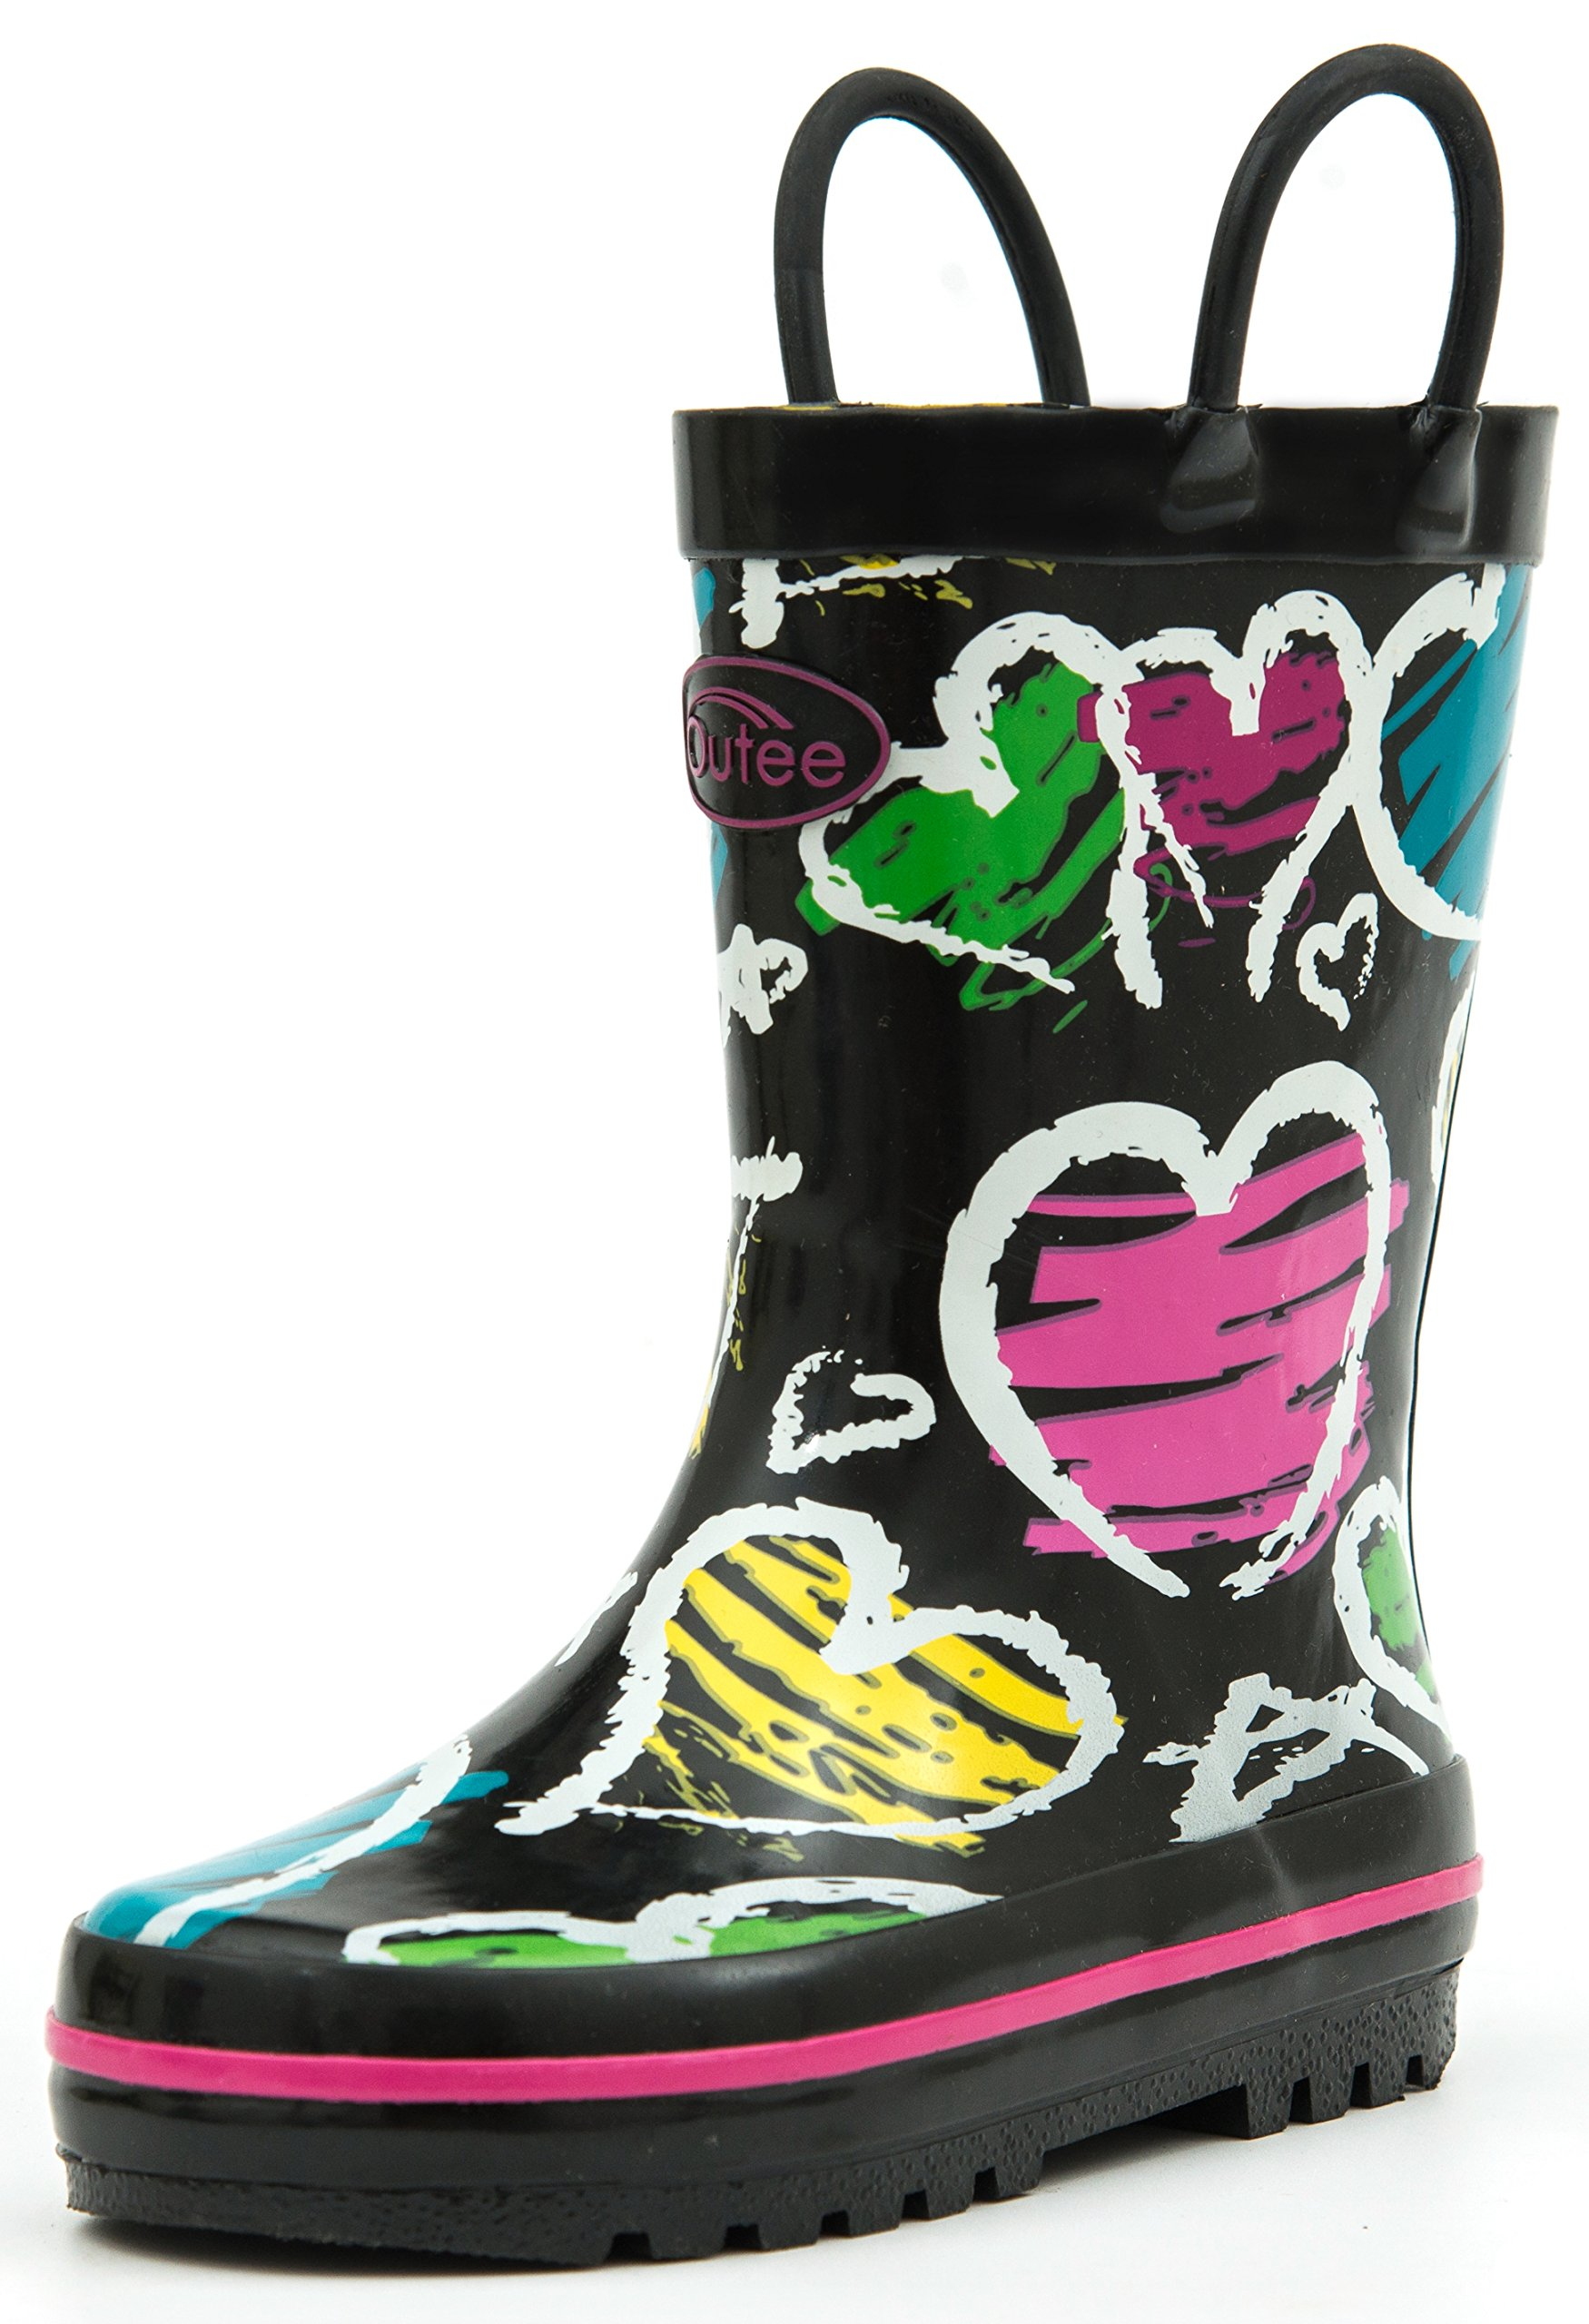 Outee Toddler Girls Kids Rain Boots Rubber Waterproof Shoes Printed Lovely Colorful Heart Cute Print with Easy On Handles (Size 6)